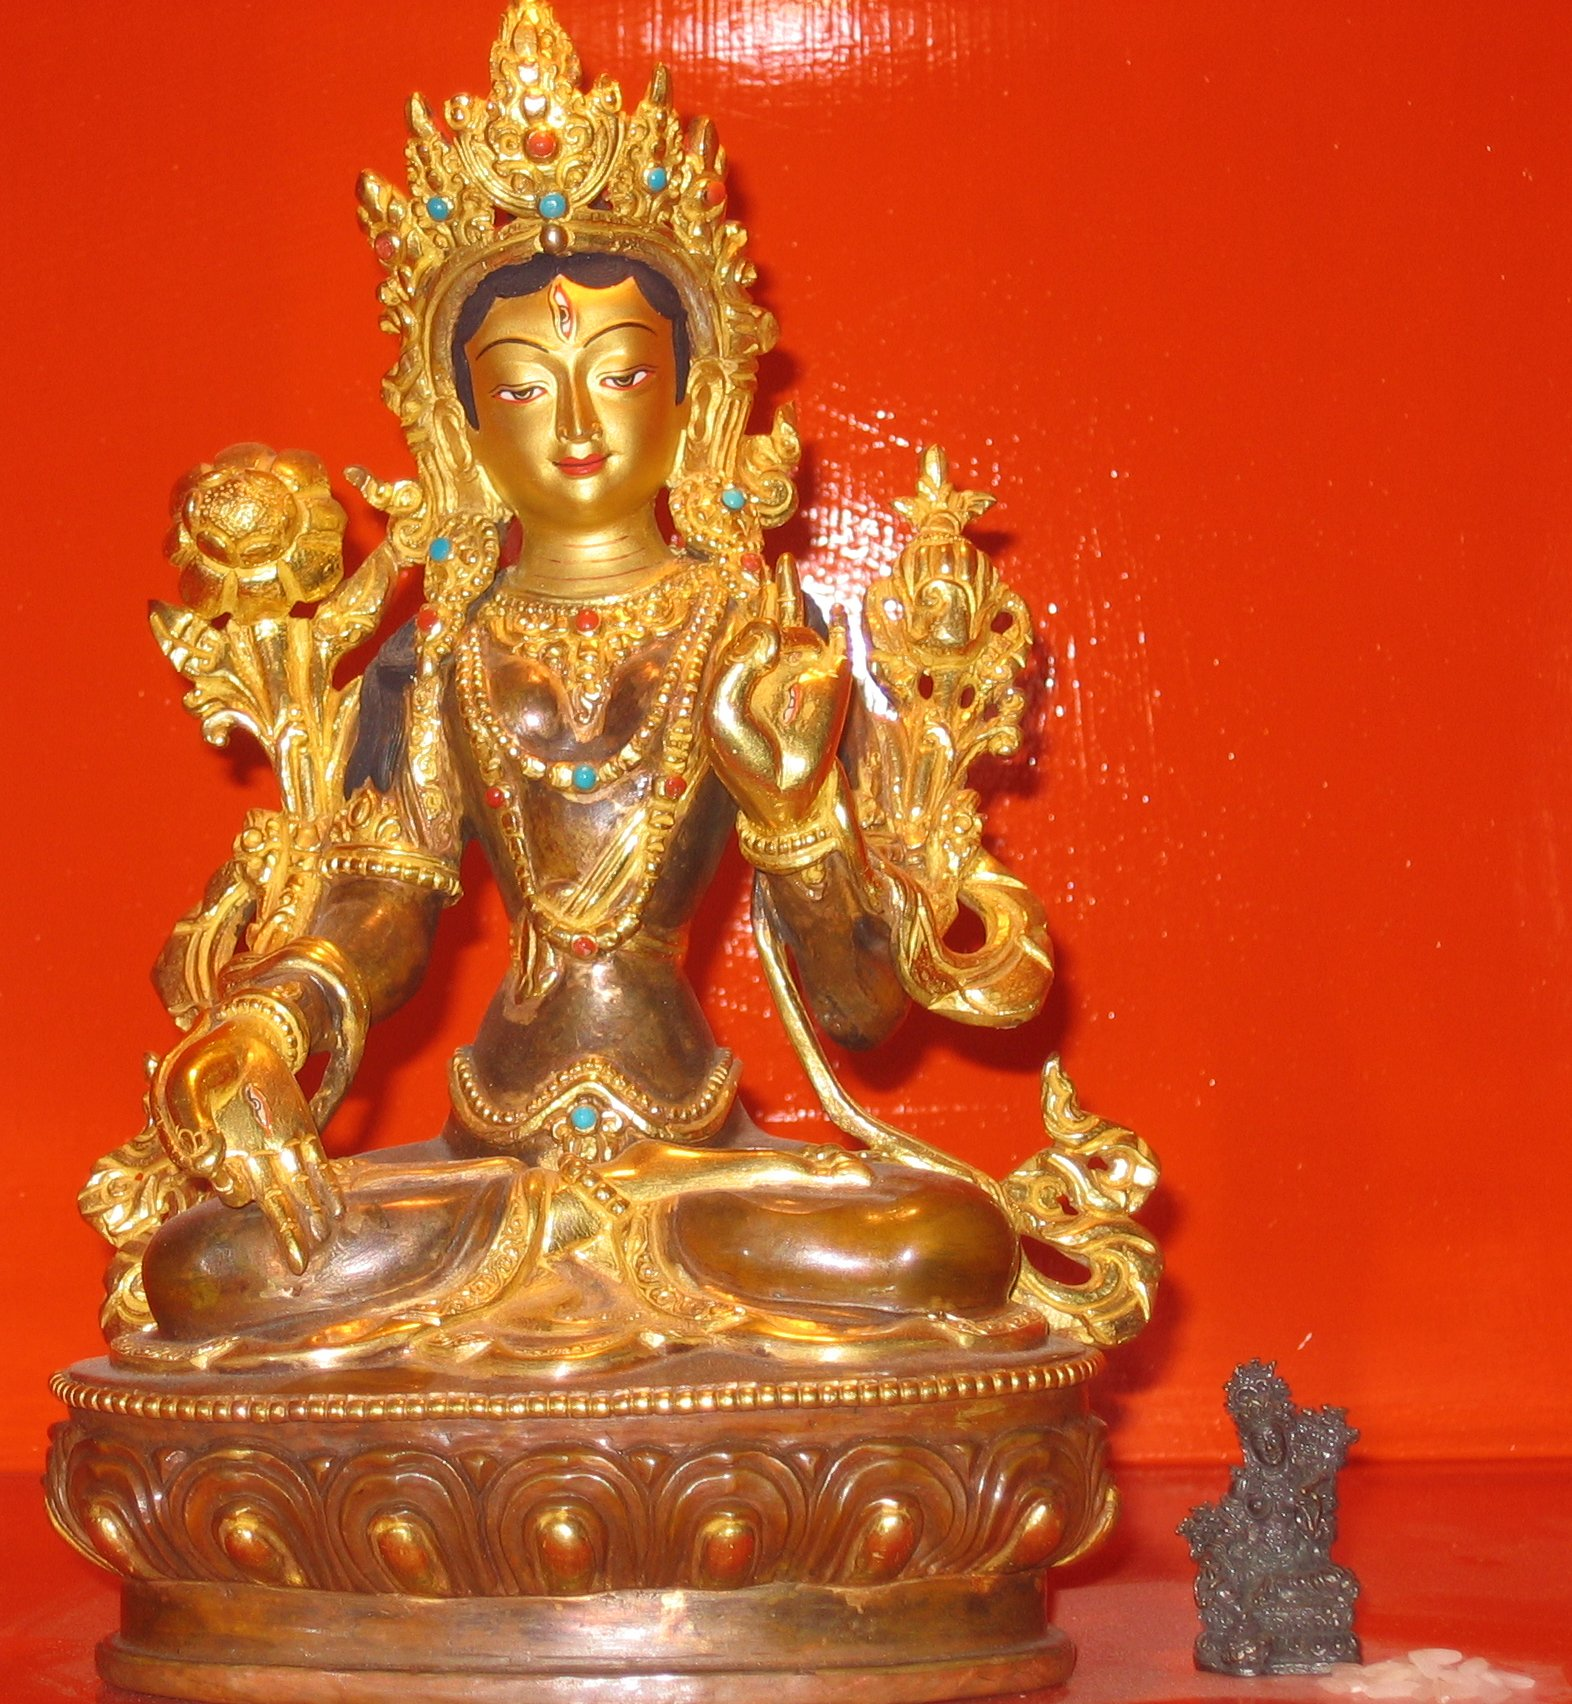 What role does the bodhisattva play in mahayana buddhism